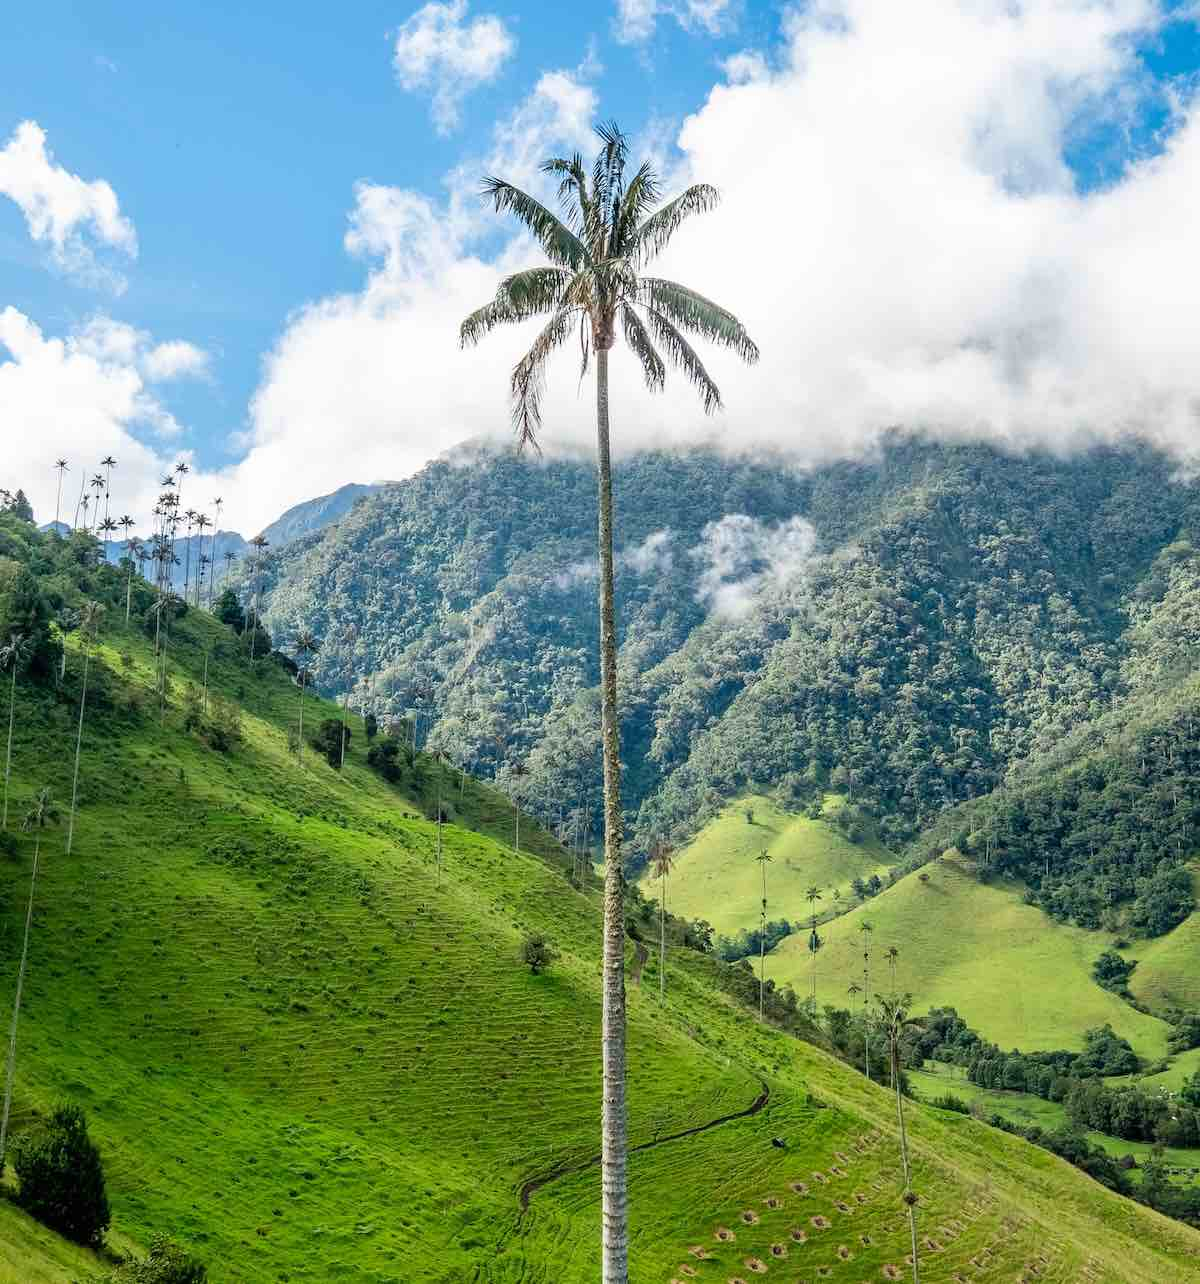 hoogtepunten in Colombia